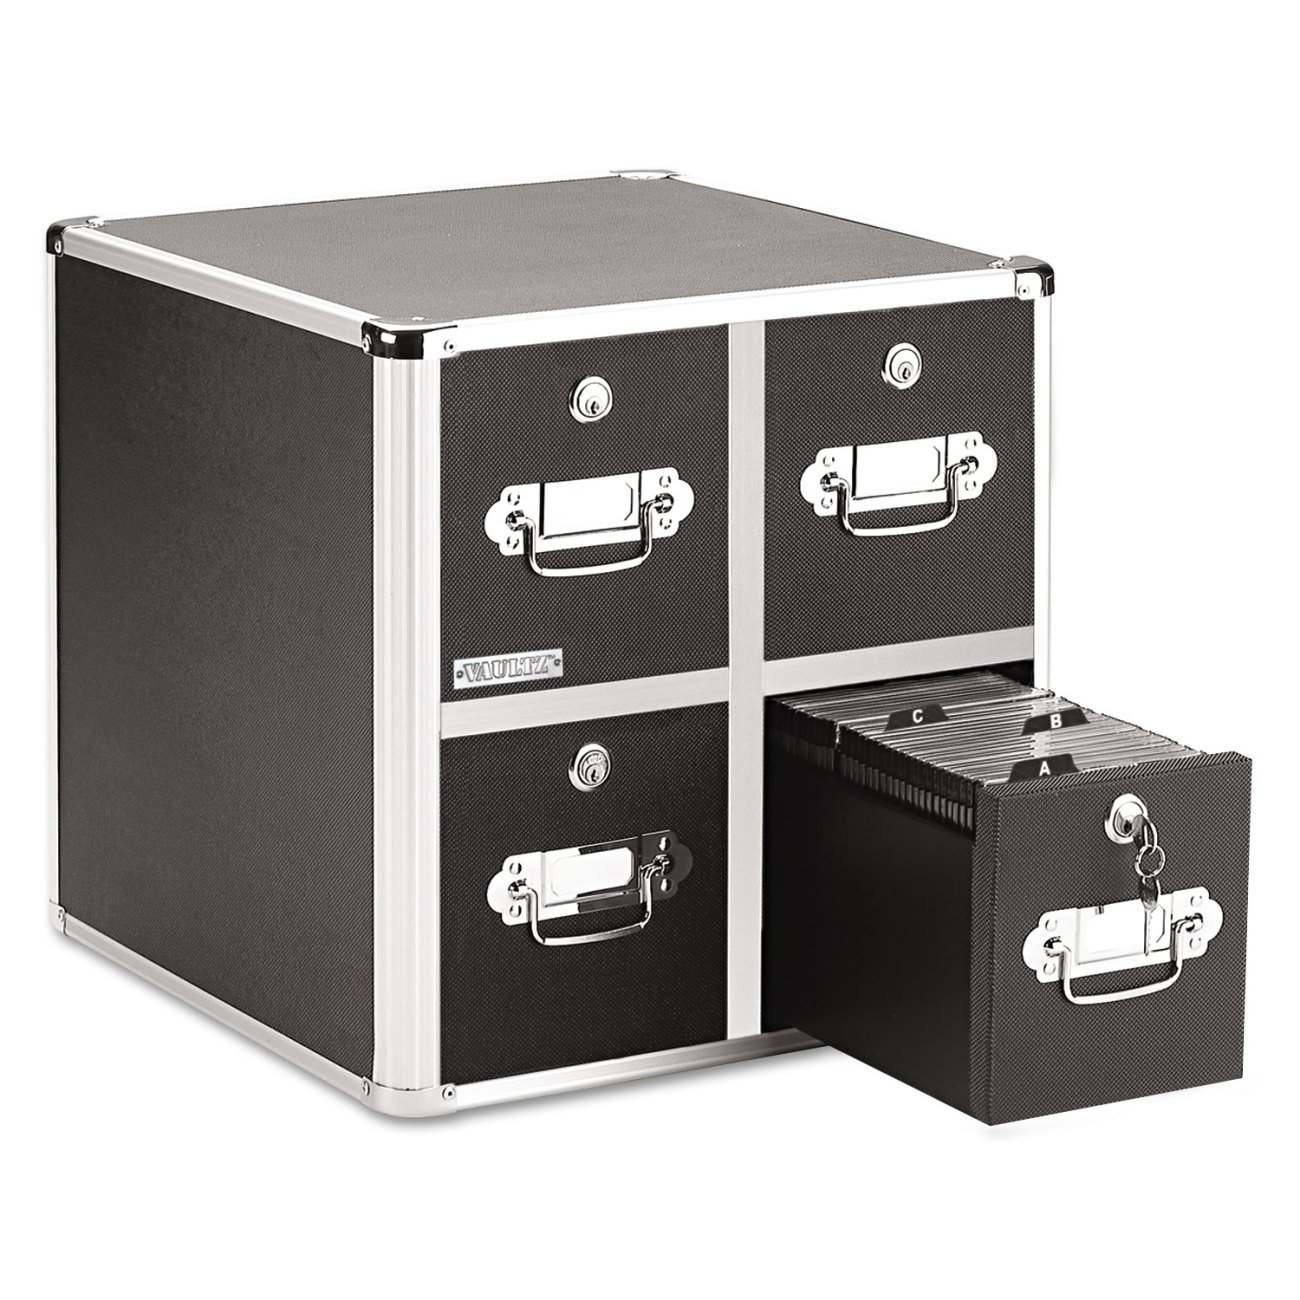 Amazon.com : Vaultz Locking CD File Cabinet, 2 Drawers, 8 X 14.5 X 15.5  Inches, Black (VZ01094) : Desk Media Storage Products : Office Products